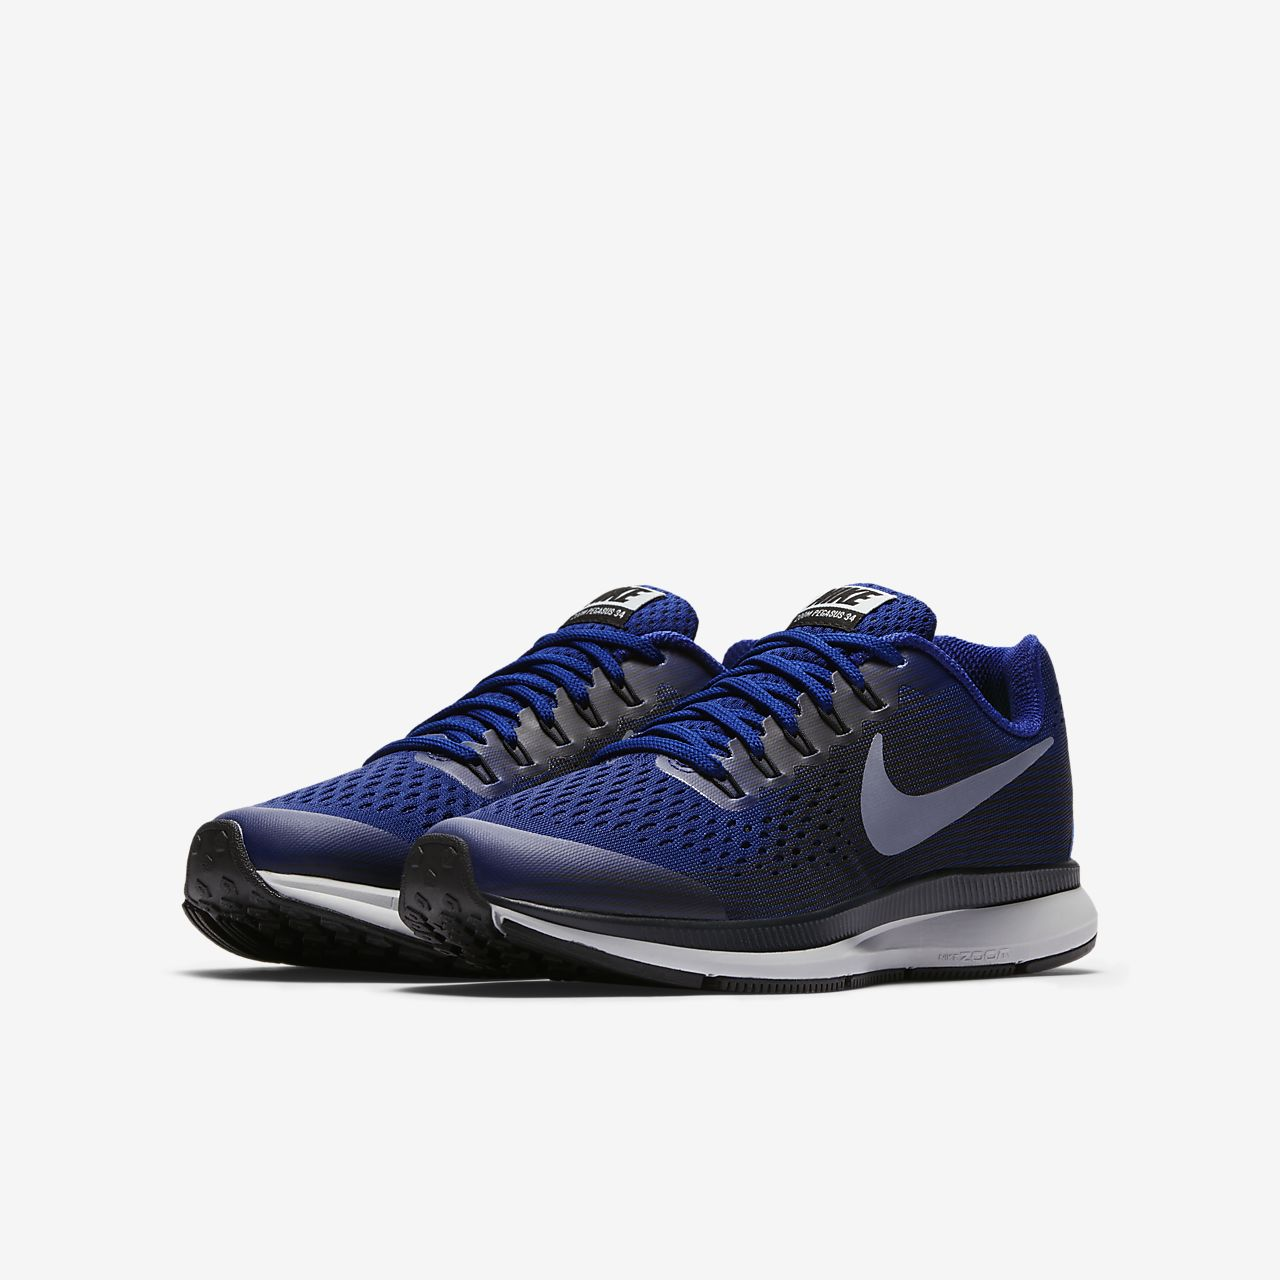 ... Nike Zoom Pegasus 34 Older Kids' Running Shoe